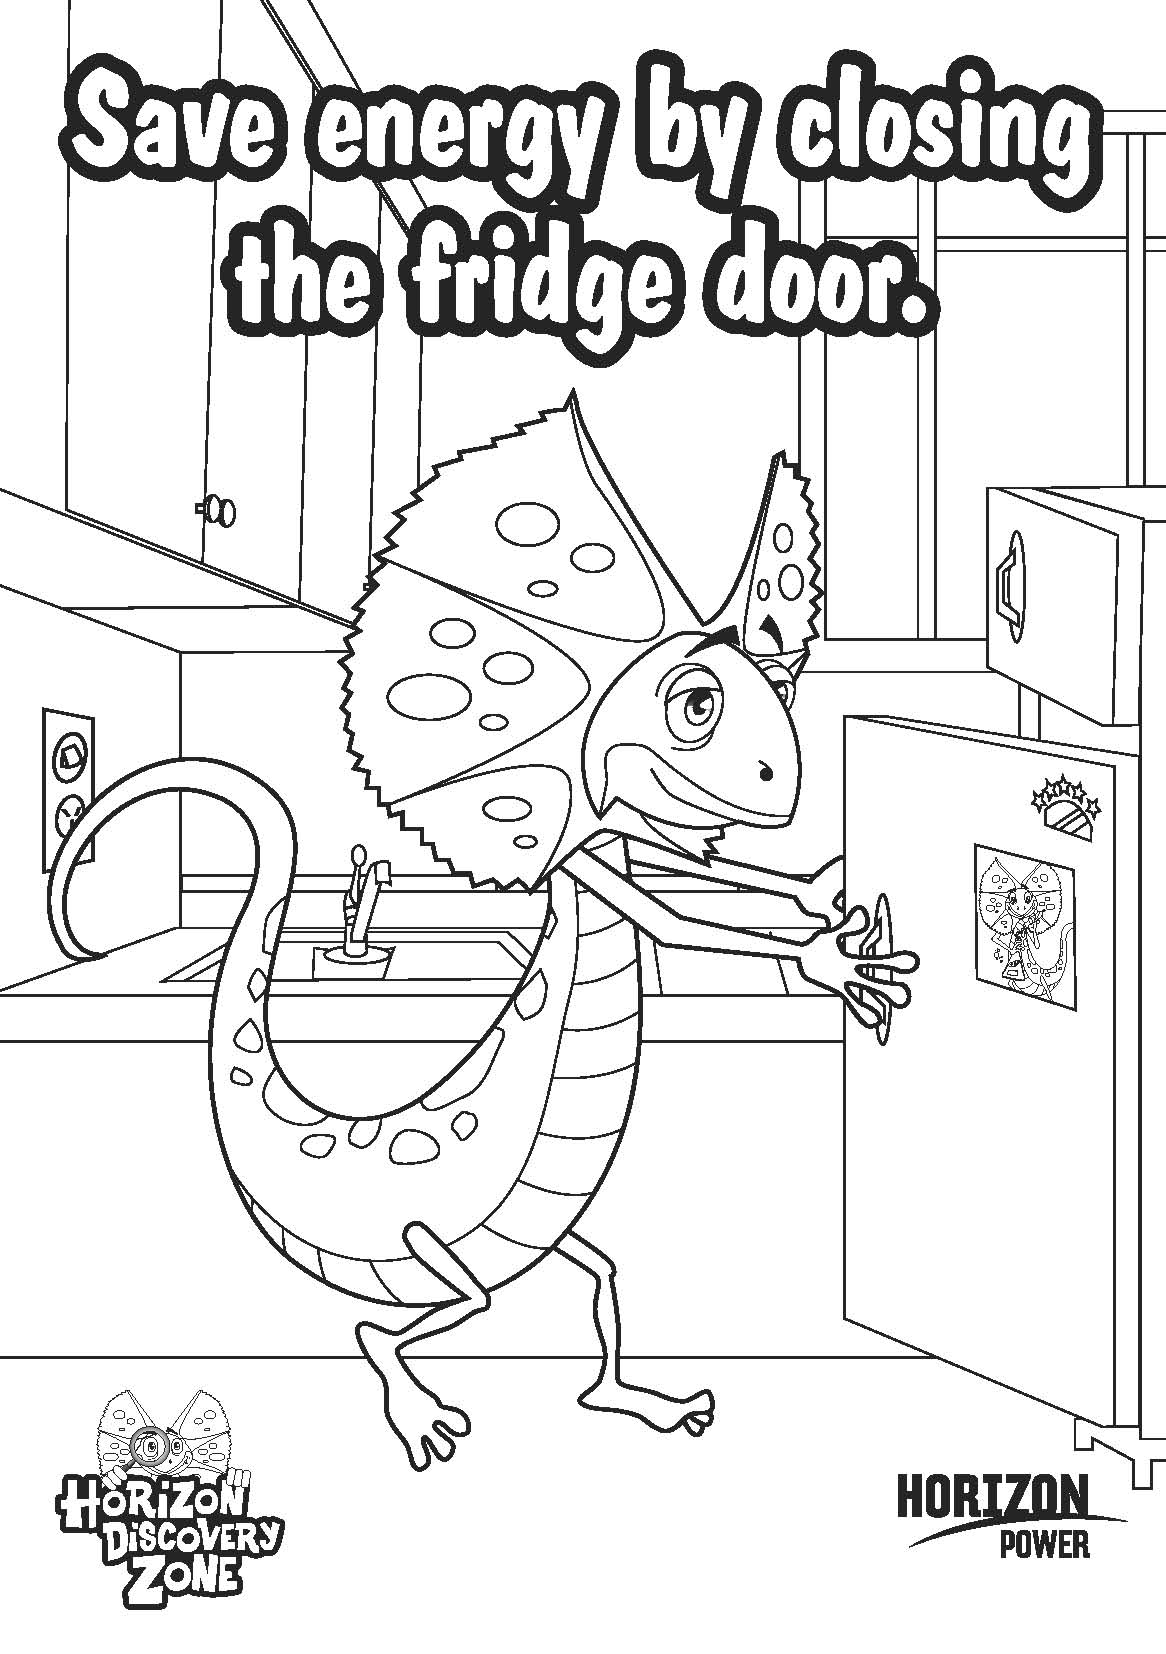 static shock coloring pages | Static Electricity Coloring Sheets Coloring Pages